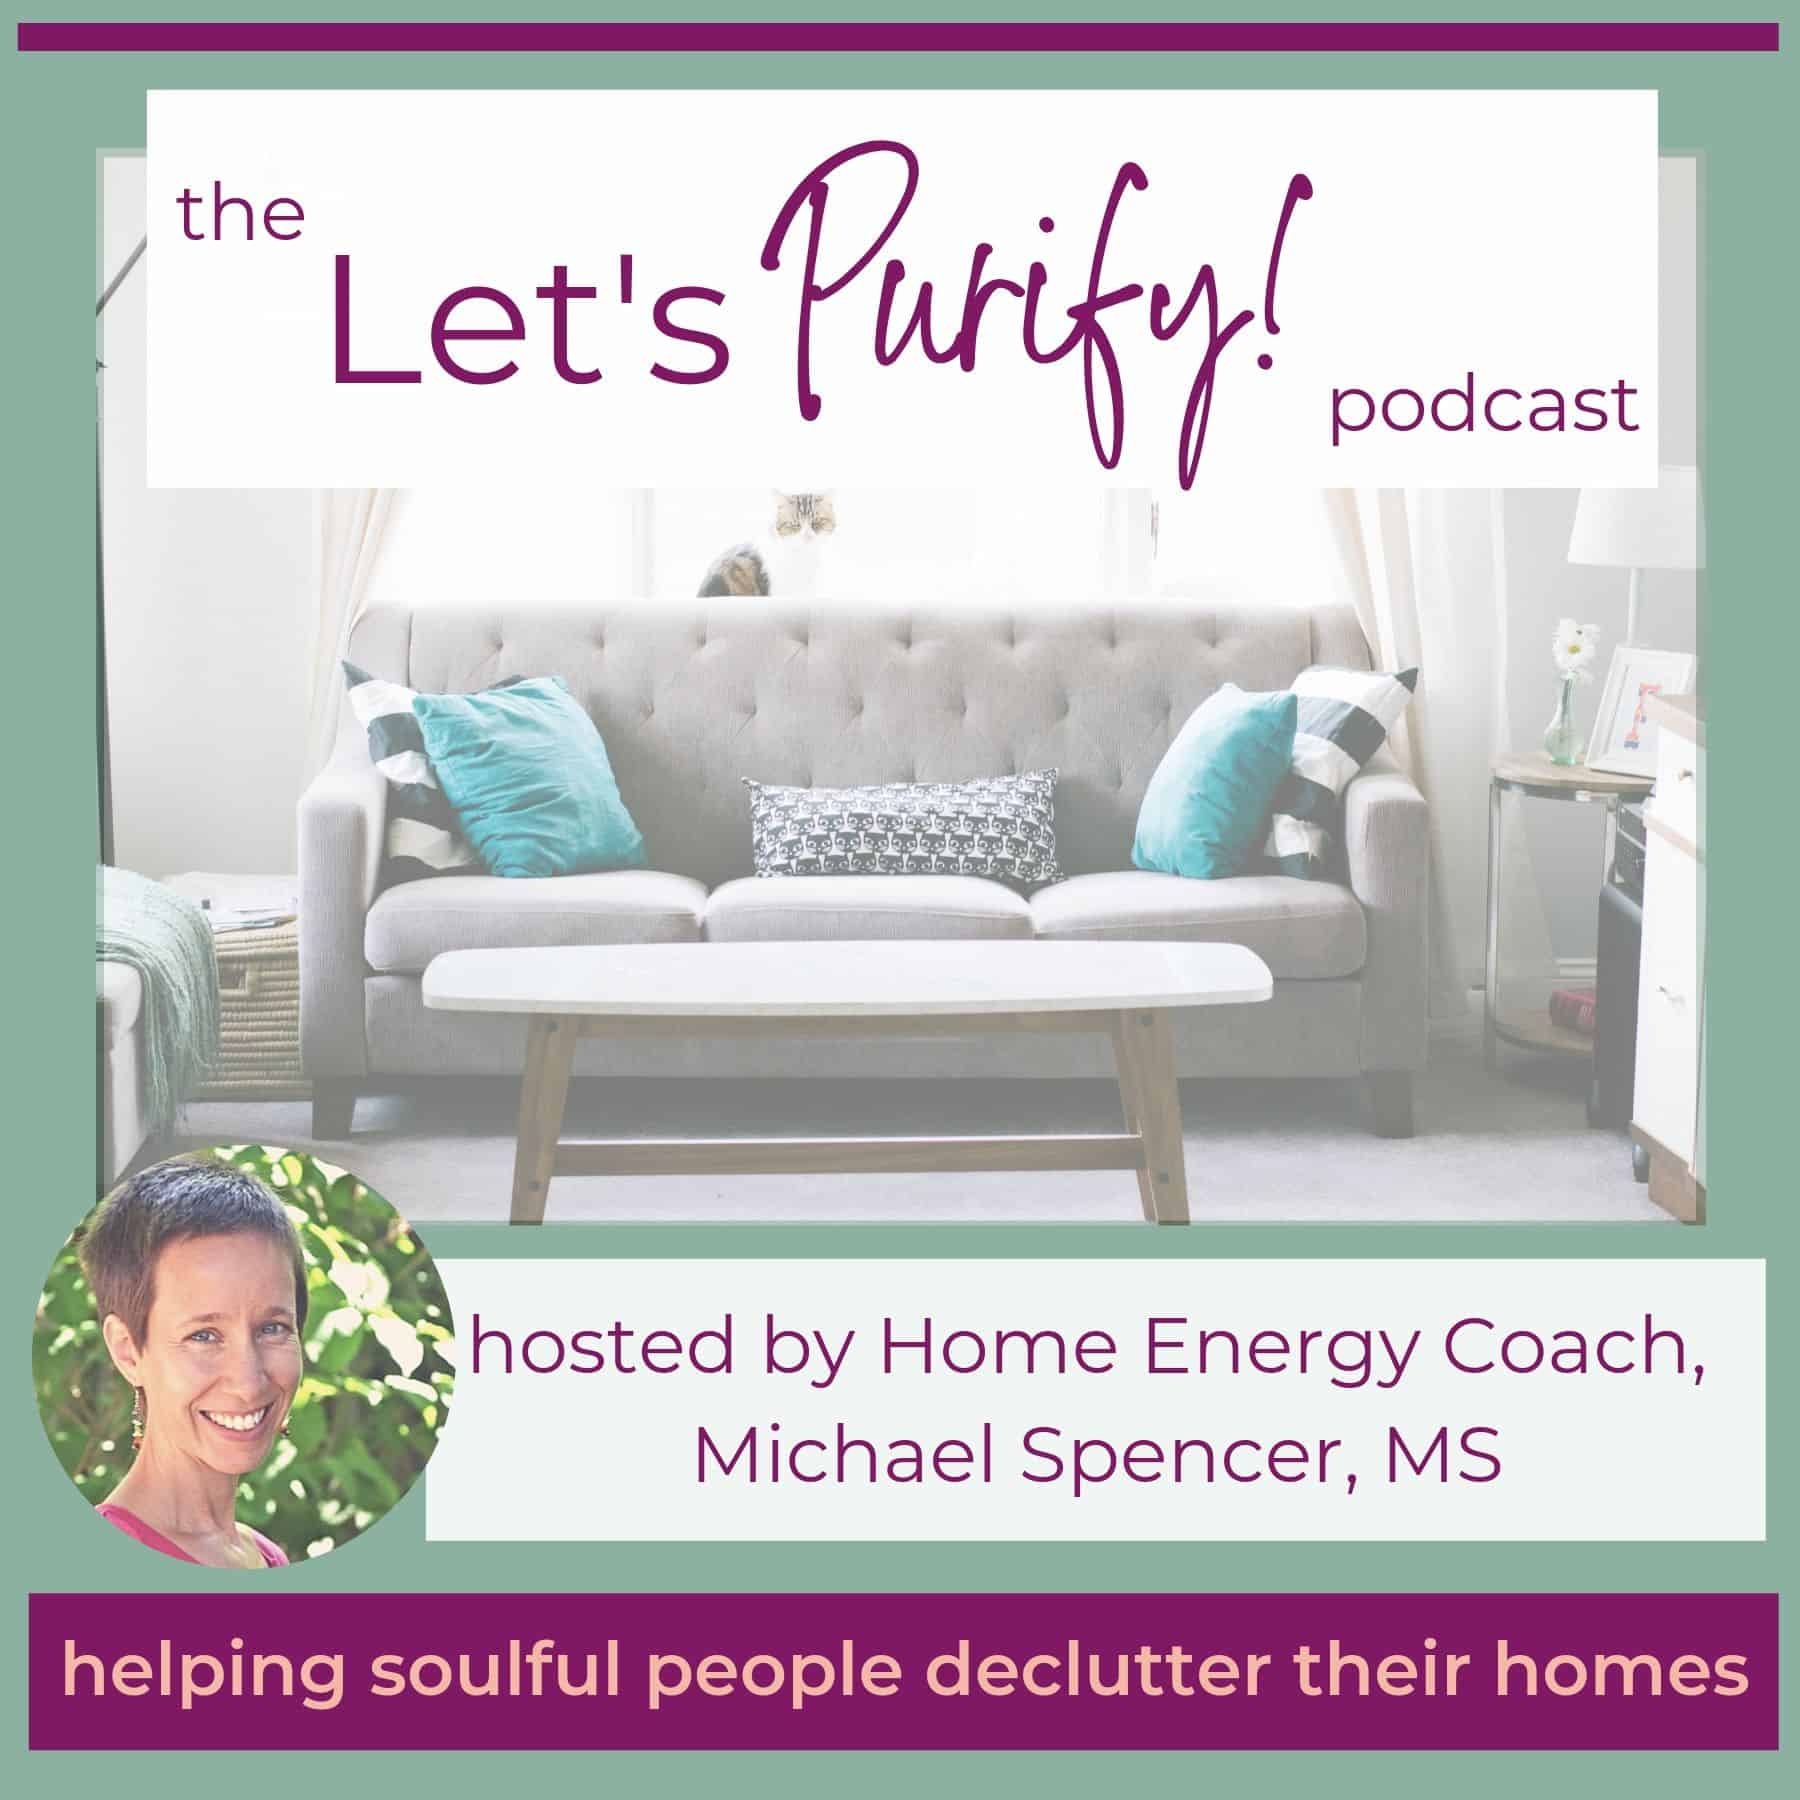 Let's Purify Podcast